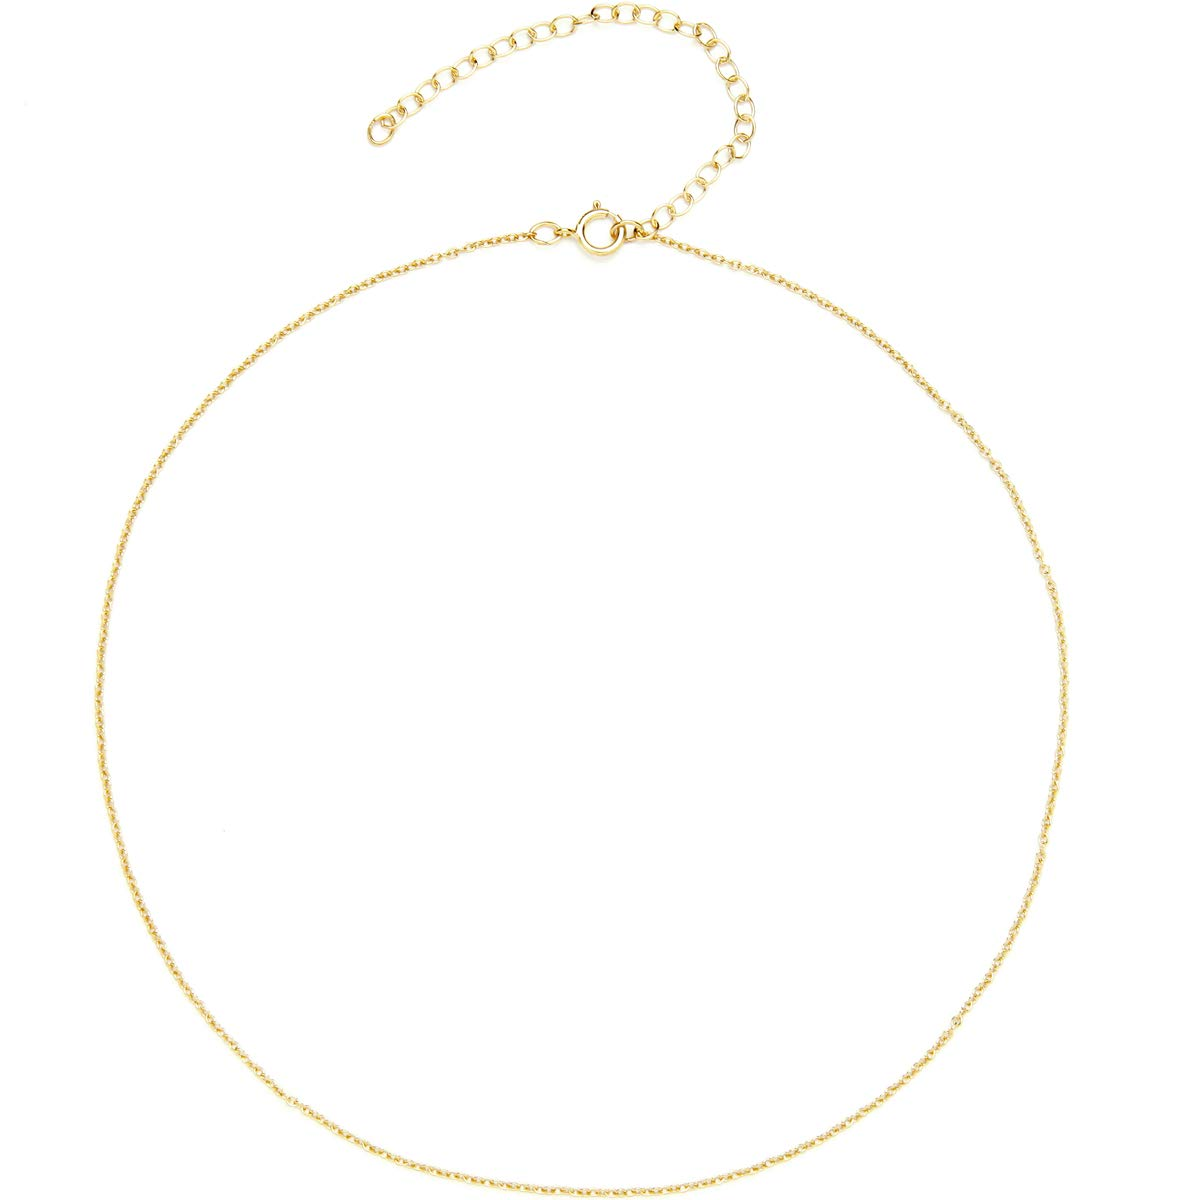 BENIQUE Dainty Short Chain Necklace Choker for Women - 925 Sterling Silver, 14K Gold Filled, Rose Gold Filled, Everyday Jewelry for Layering, Made in USA, 13''+3'' Adjustable Extender (14K Gold Filled)